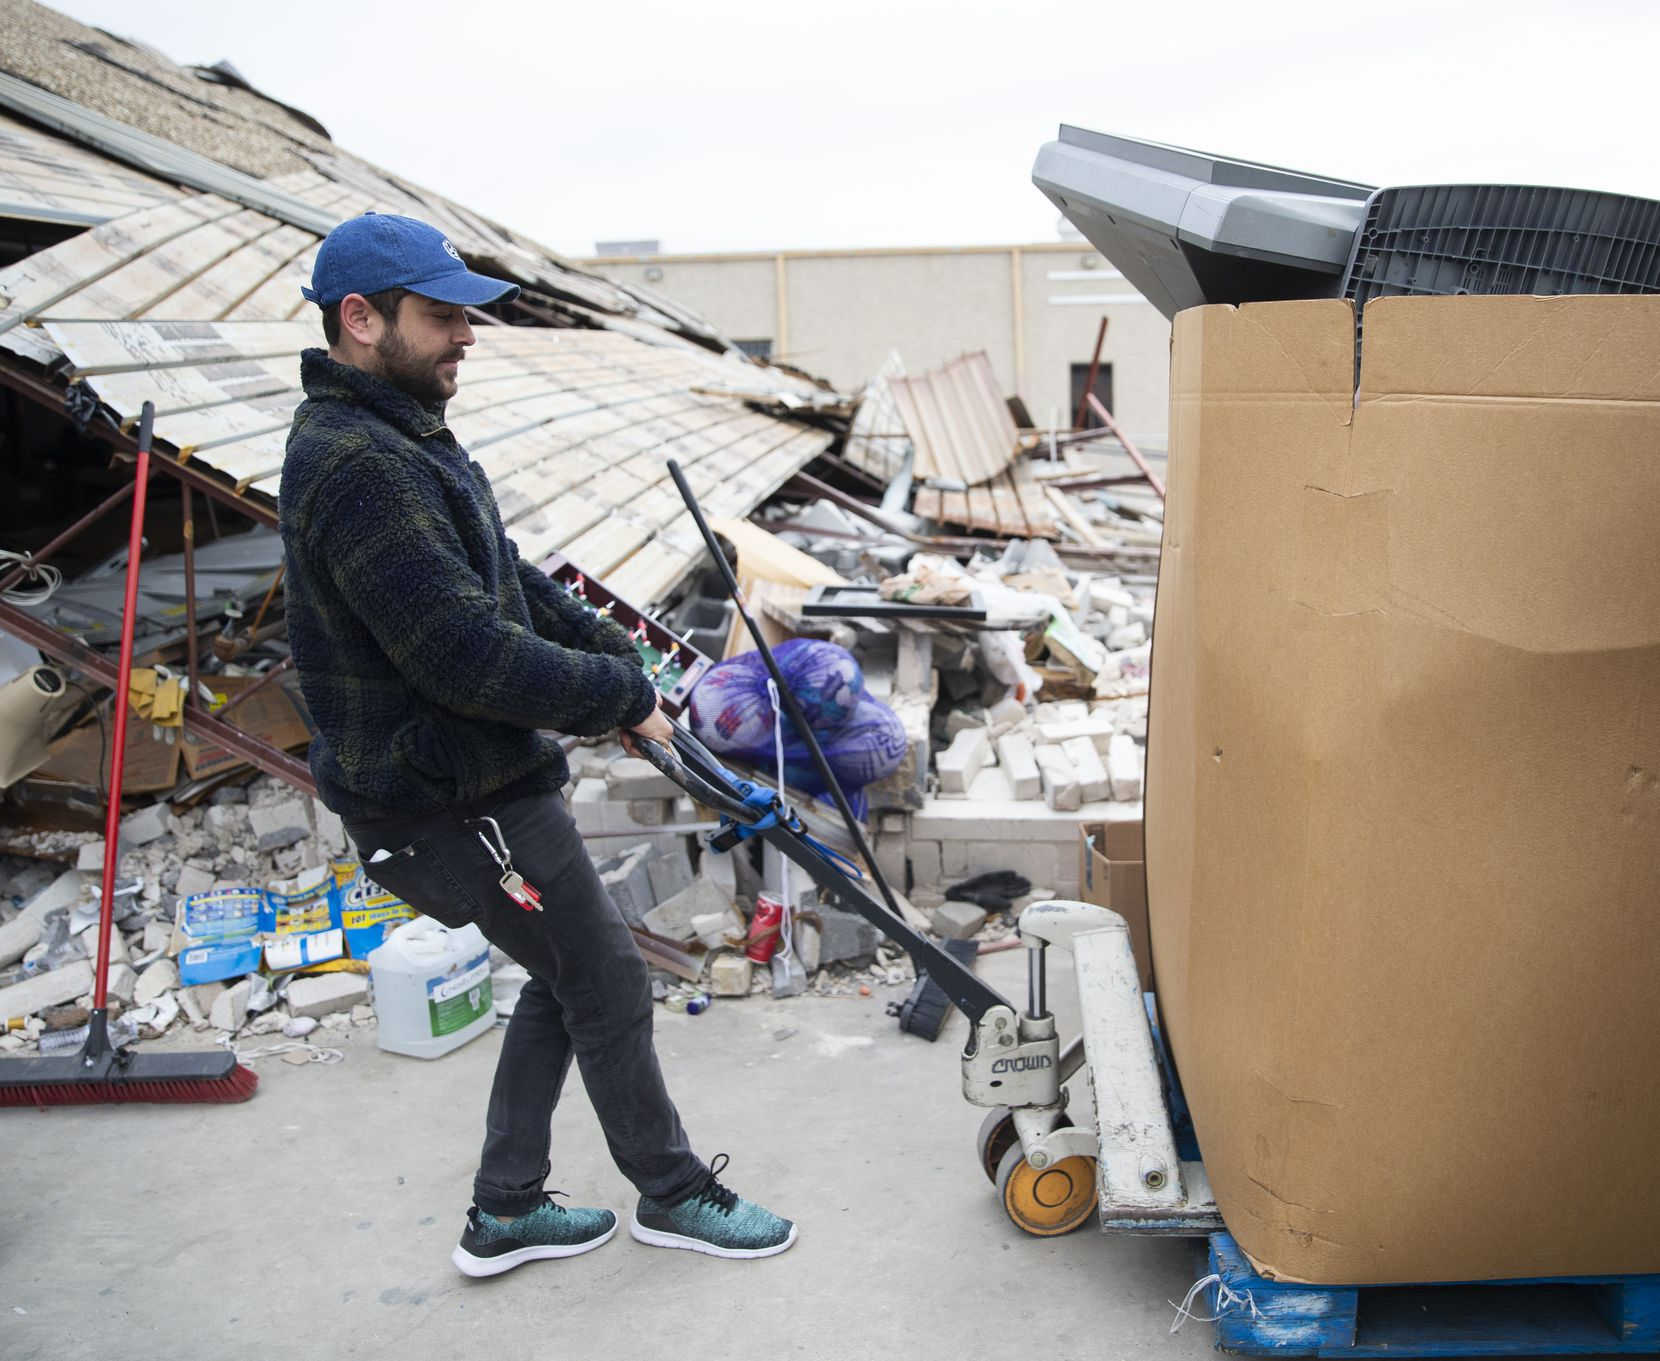 David Peganyee continues to run his charitable donation business despite the building having destroyed his warehouse on Composite Drive near Walnut Hill Lane and Stemmons Freeway.